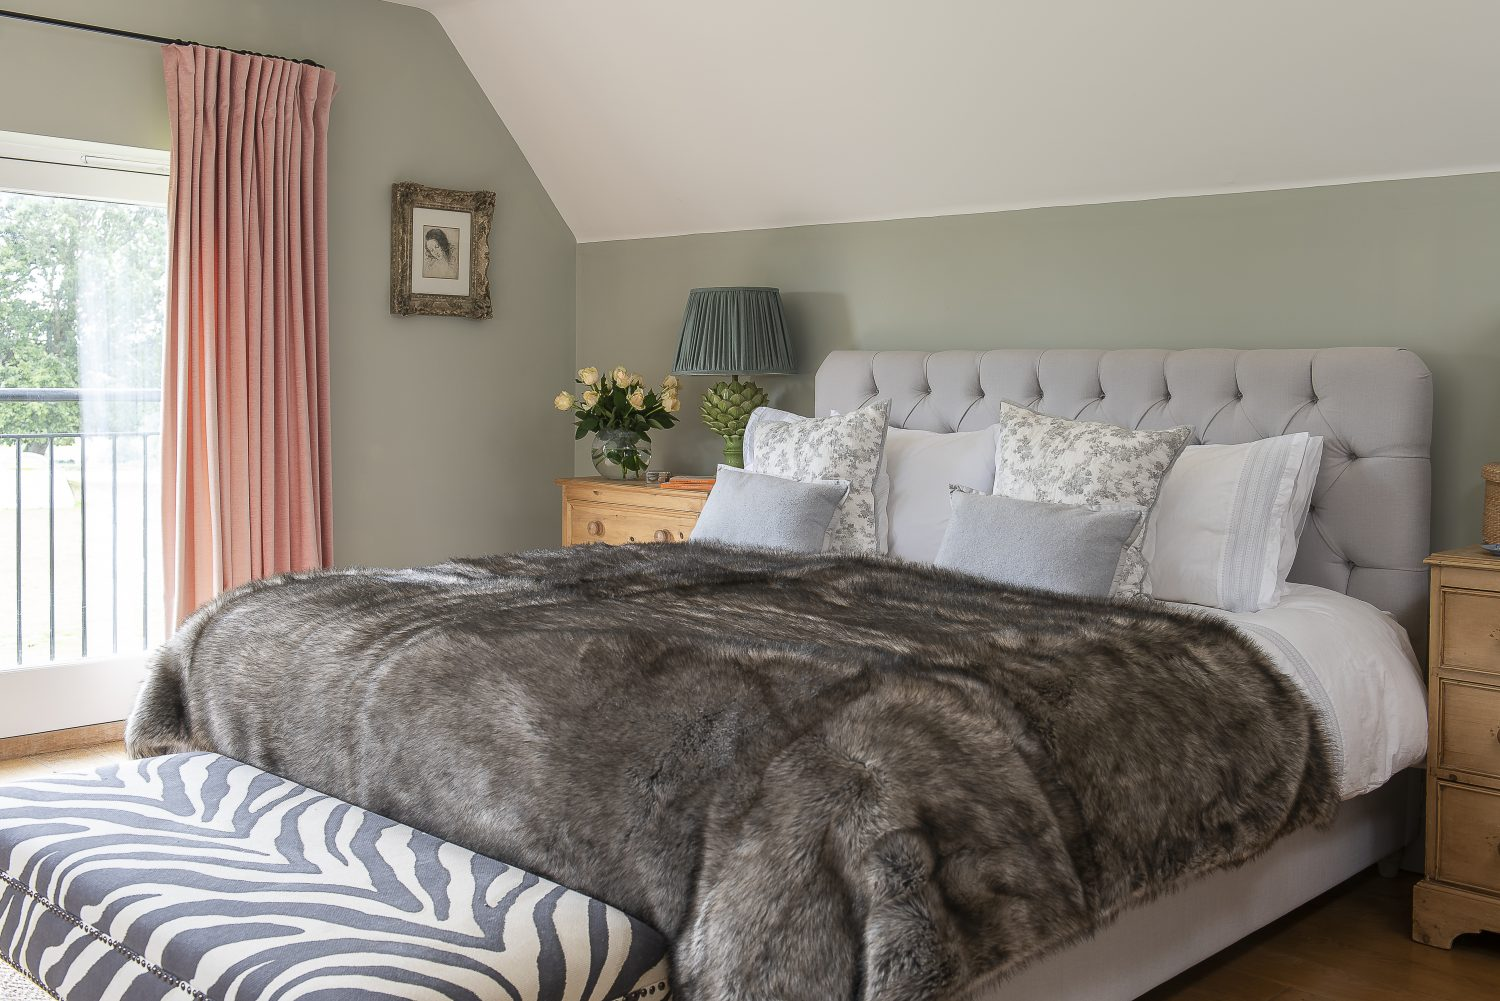 The faux fur throw and zebra print ottoman in the master bedroom are both Ally touches. The artichoke lamp is by Pooky